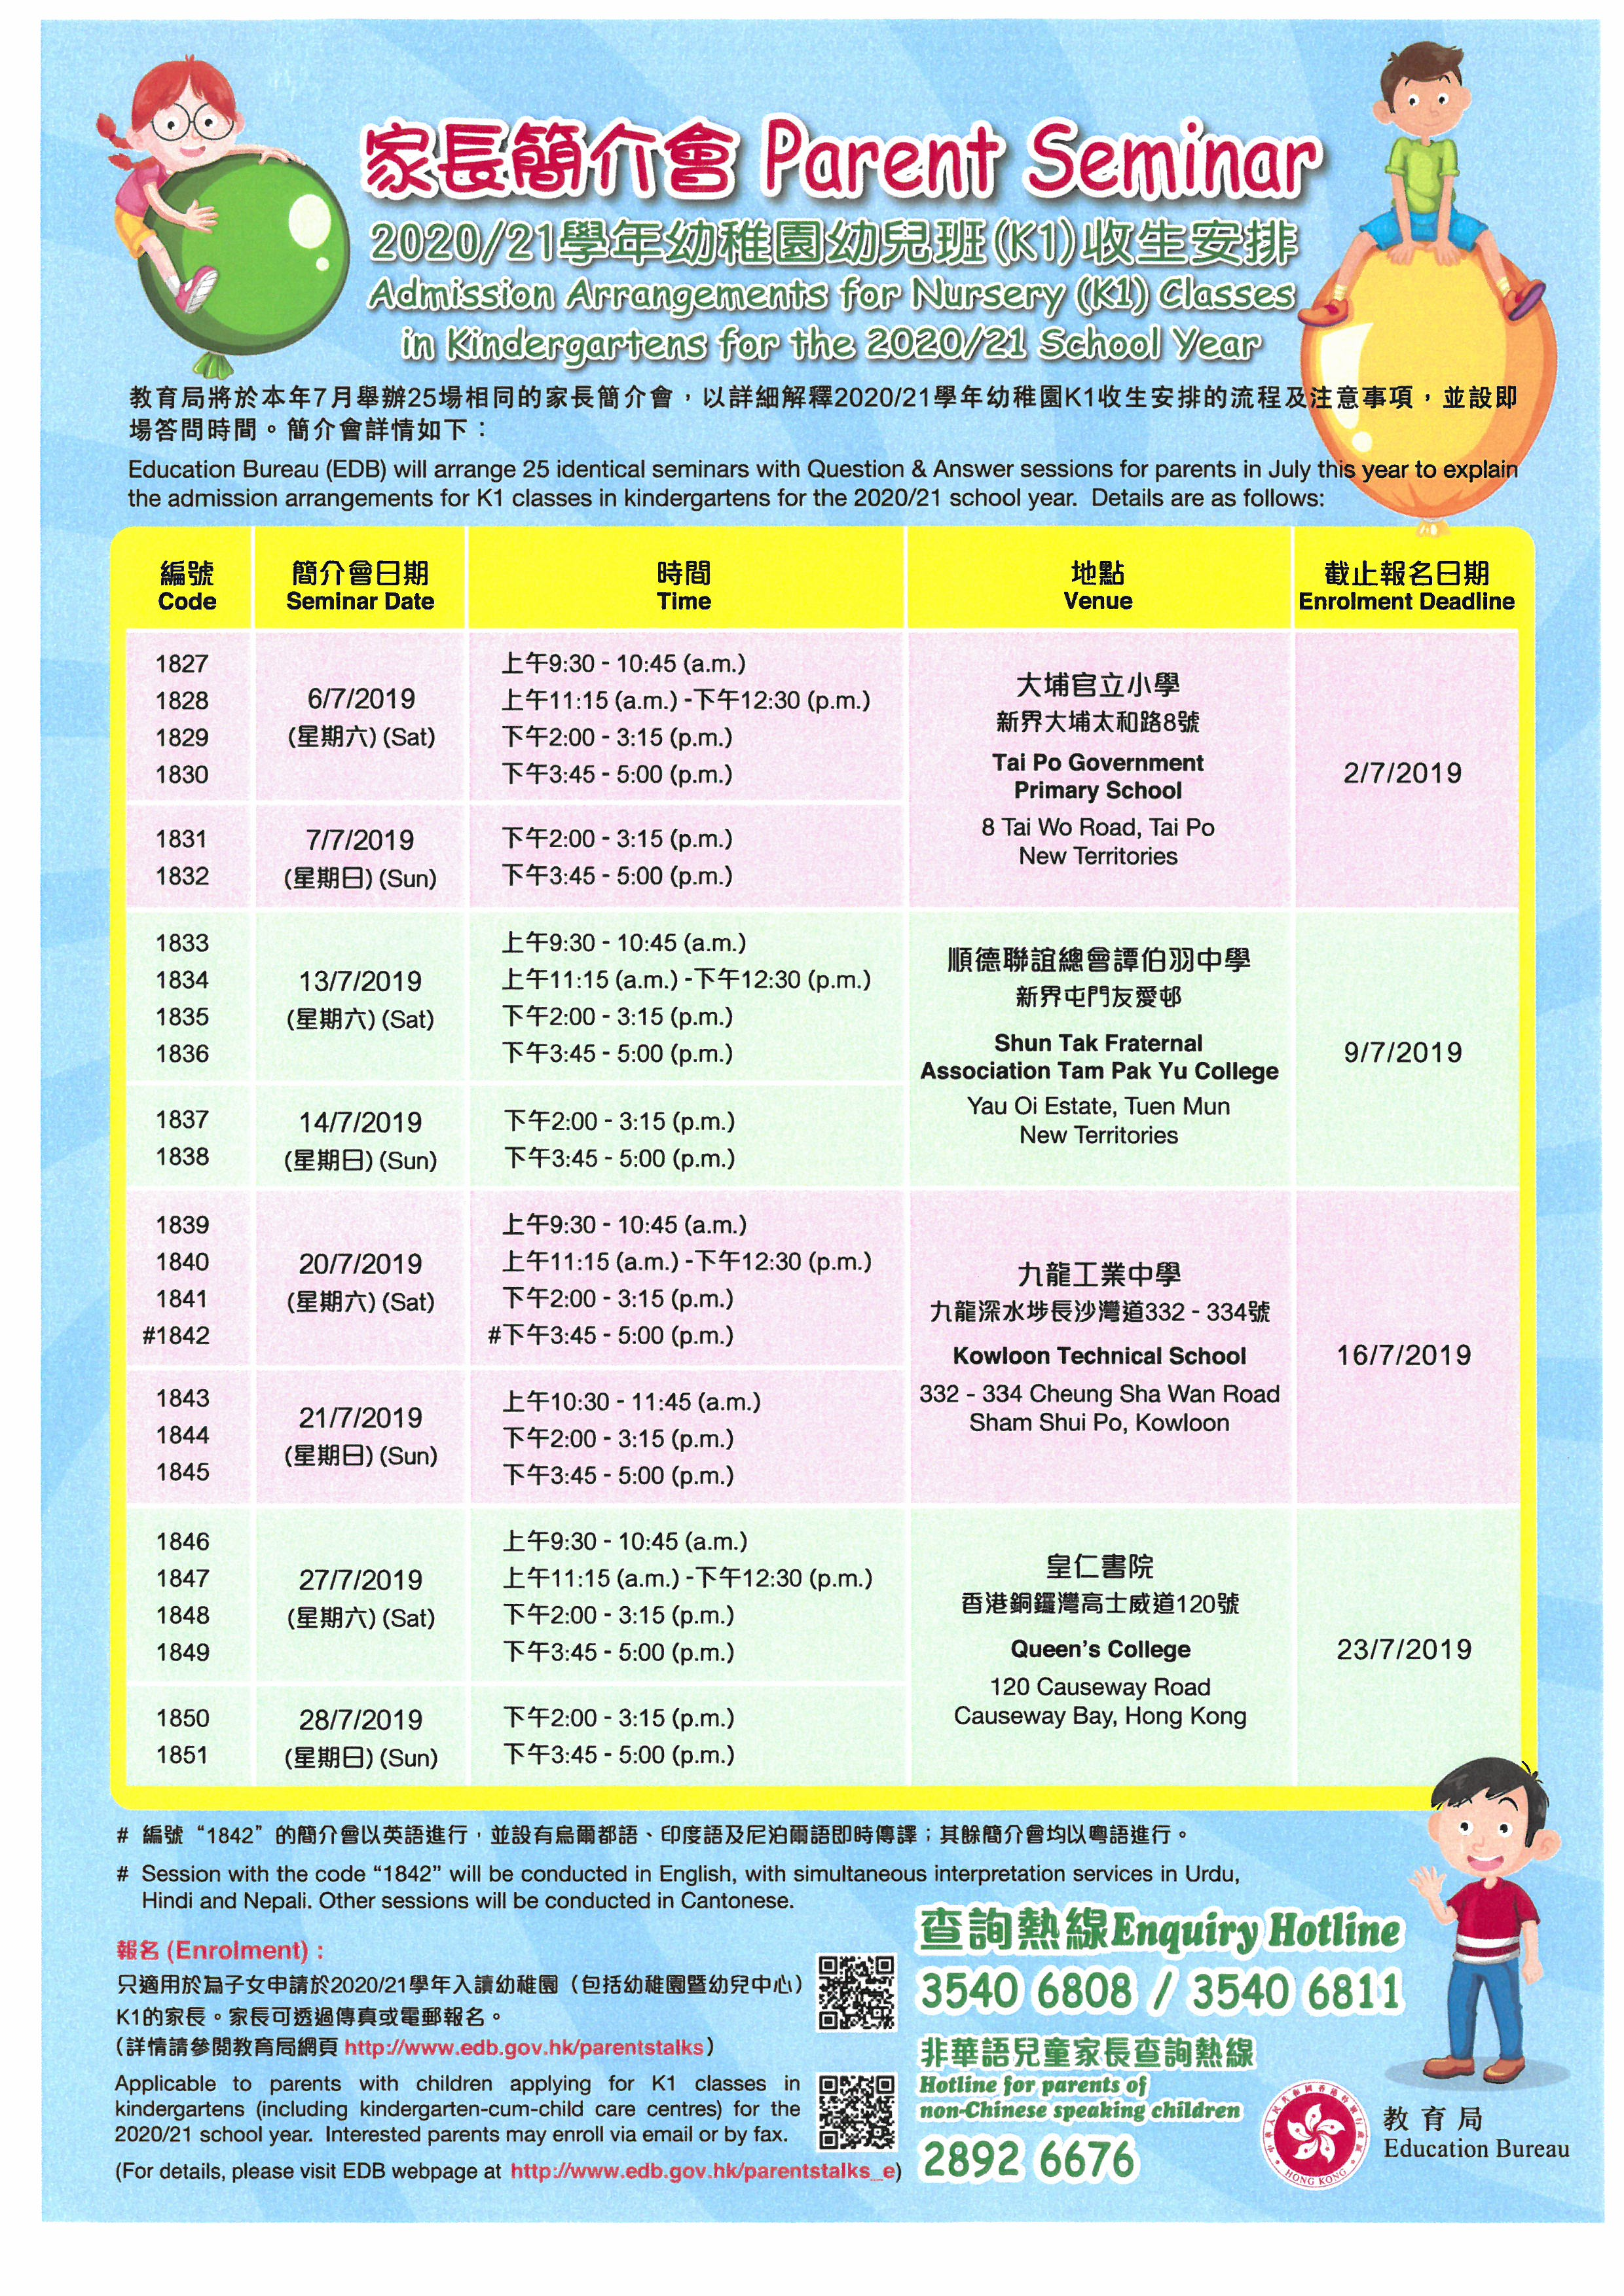 (Eduction Bureau) Parent Seminar—Admission Arrangements for Nursery (K1) Classes in Kindergartens for the 2020/21 School Year